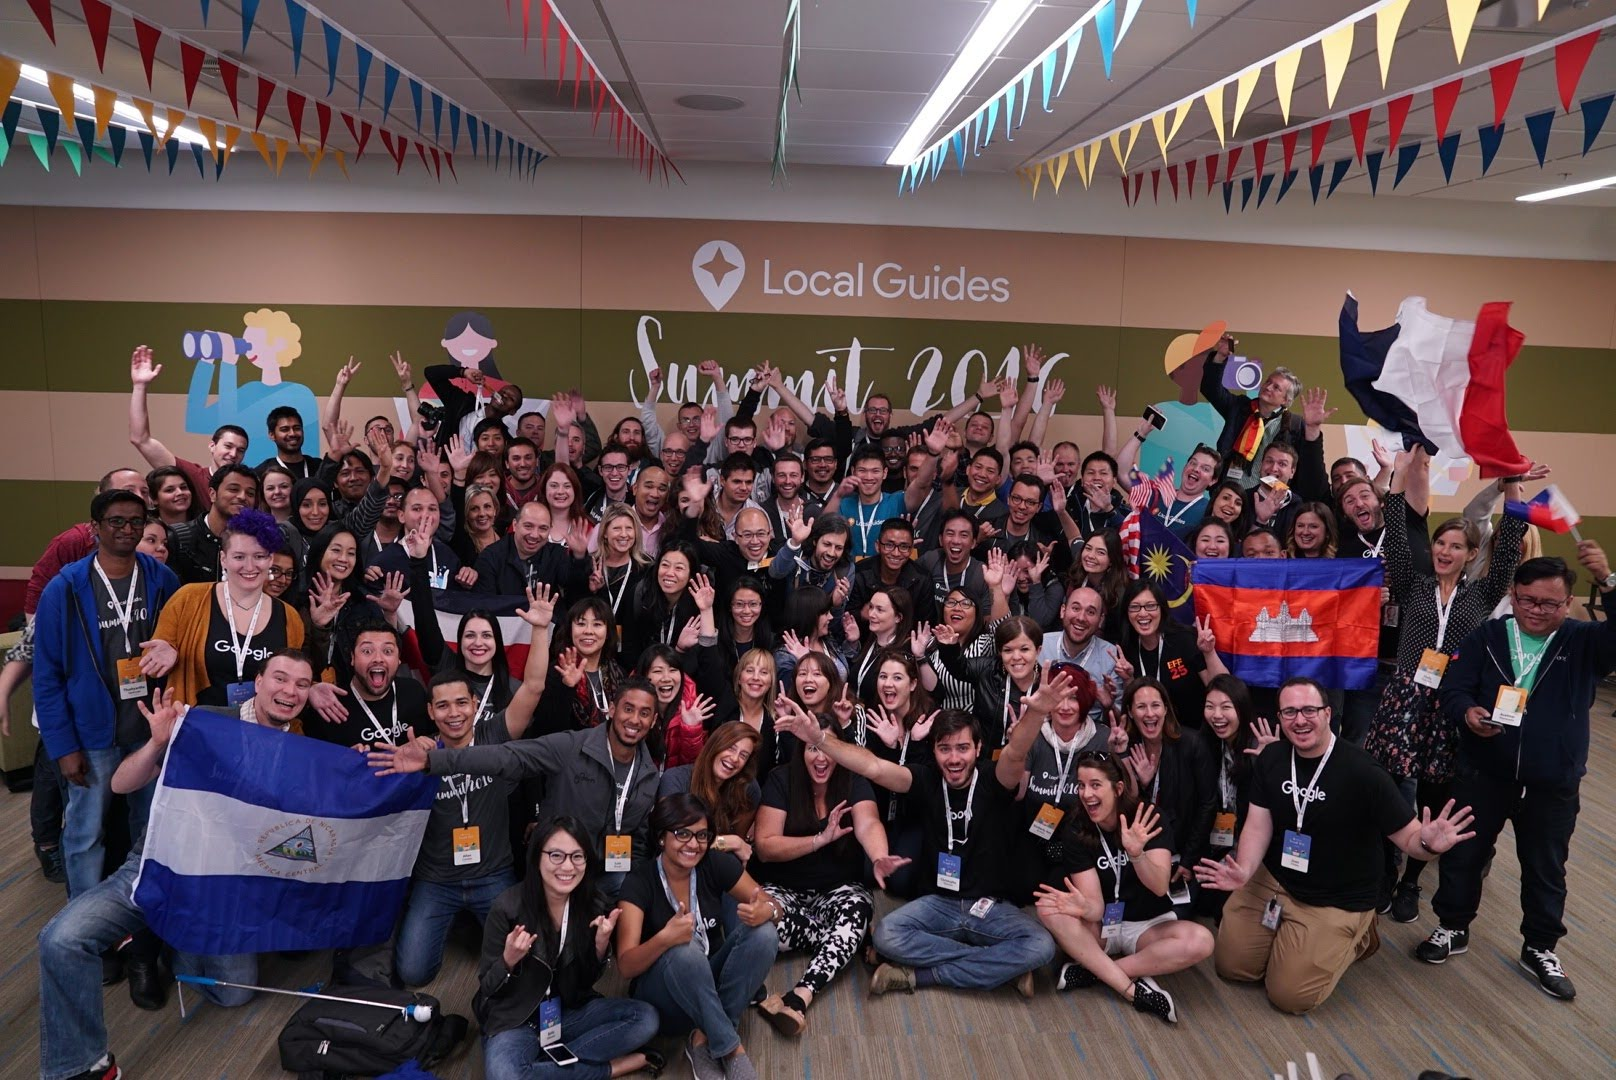 Local_Guides_Summit_2016